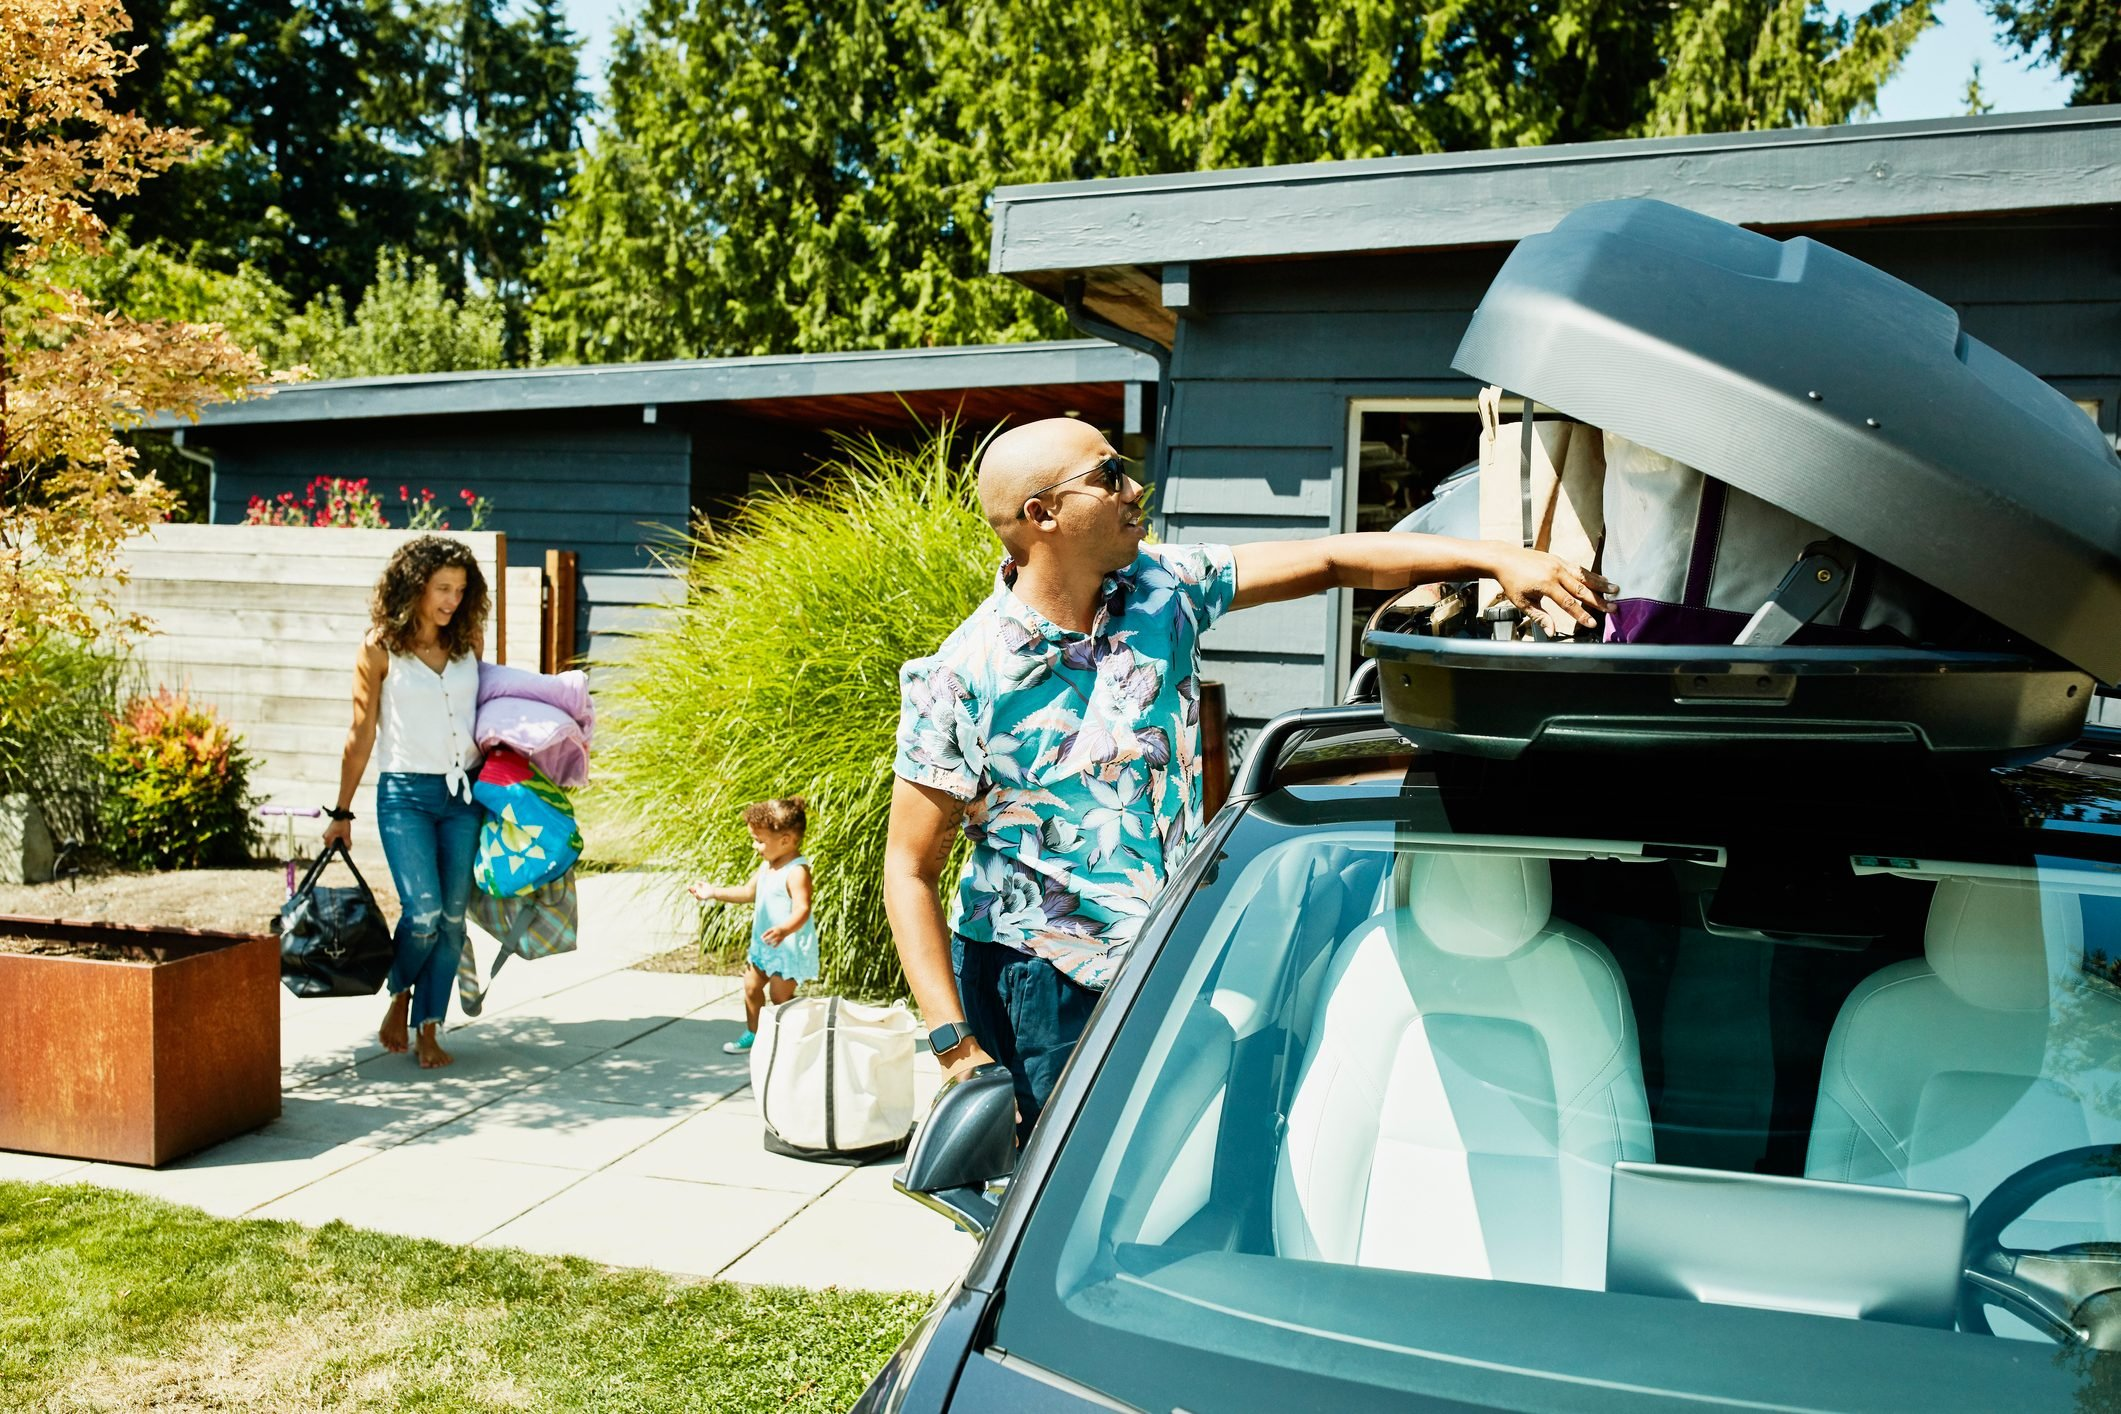 Family loading luggage into car top box before road trip